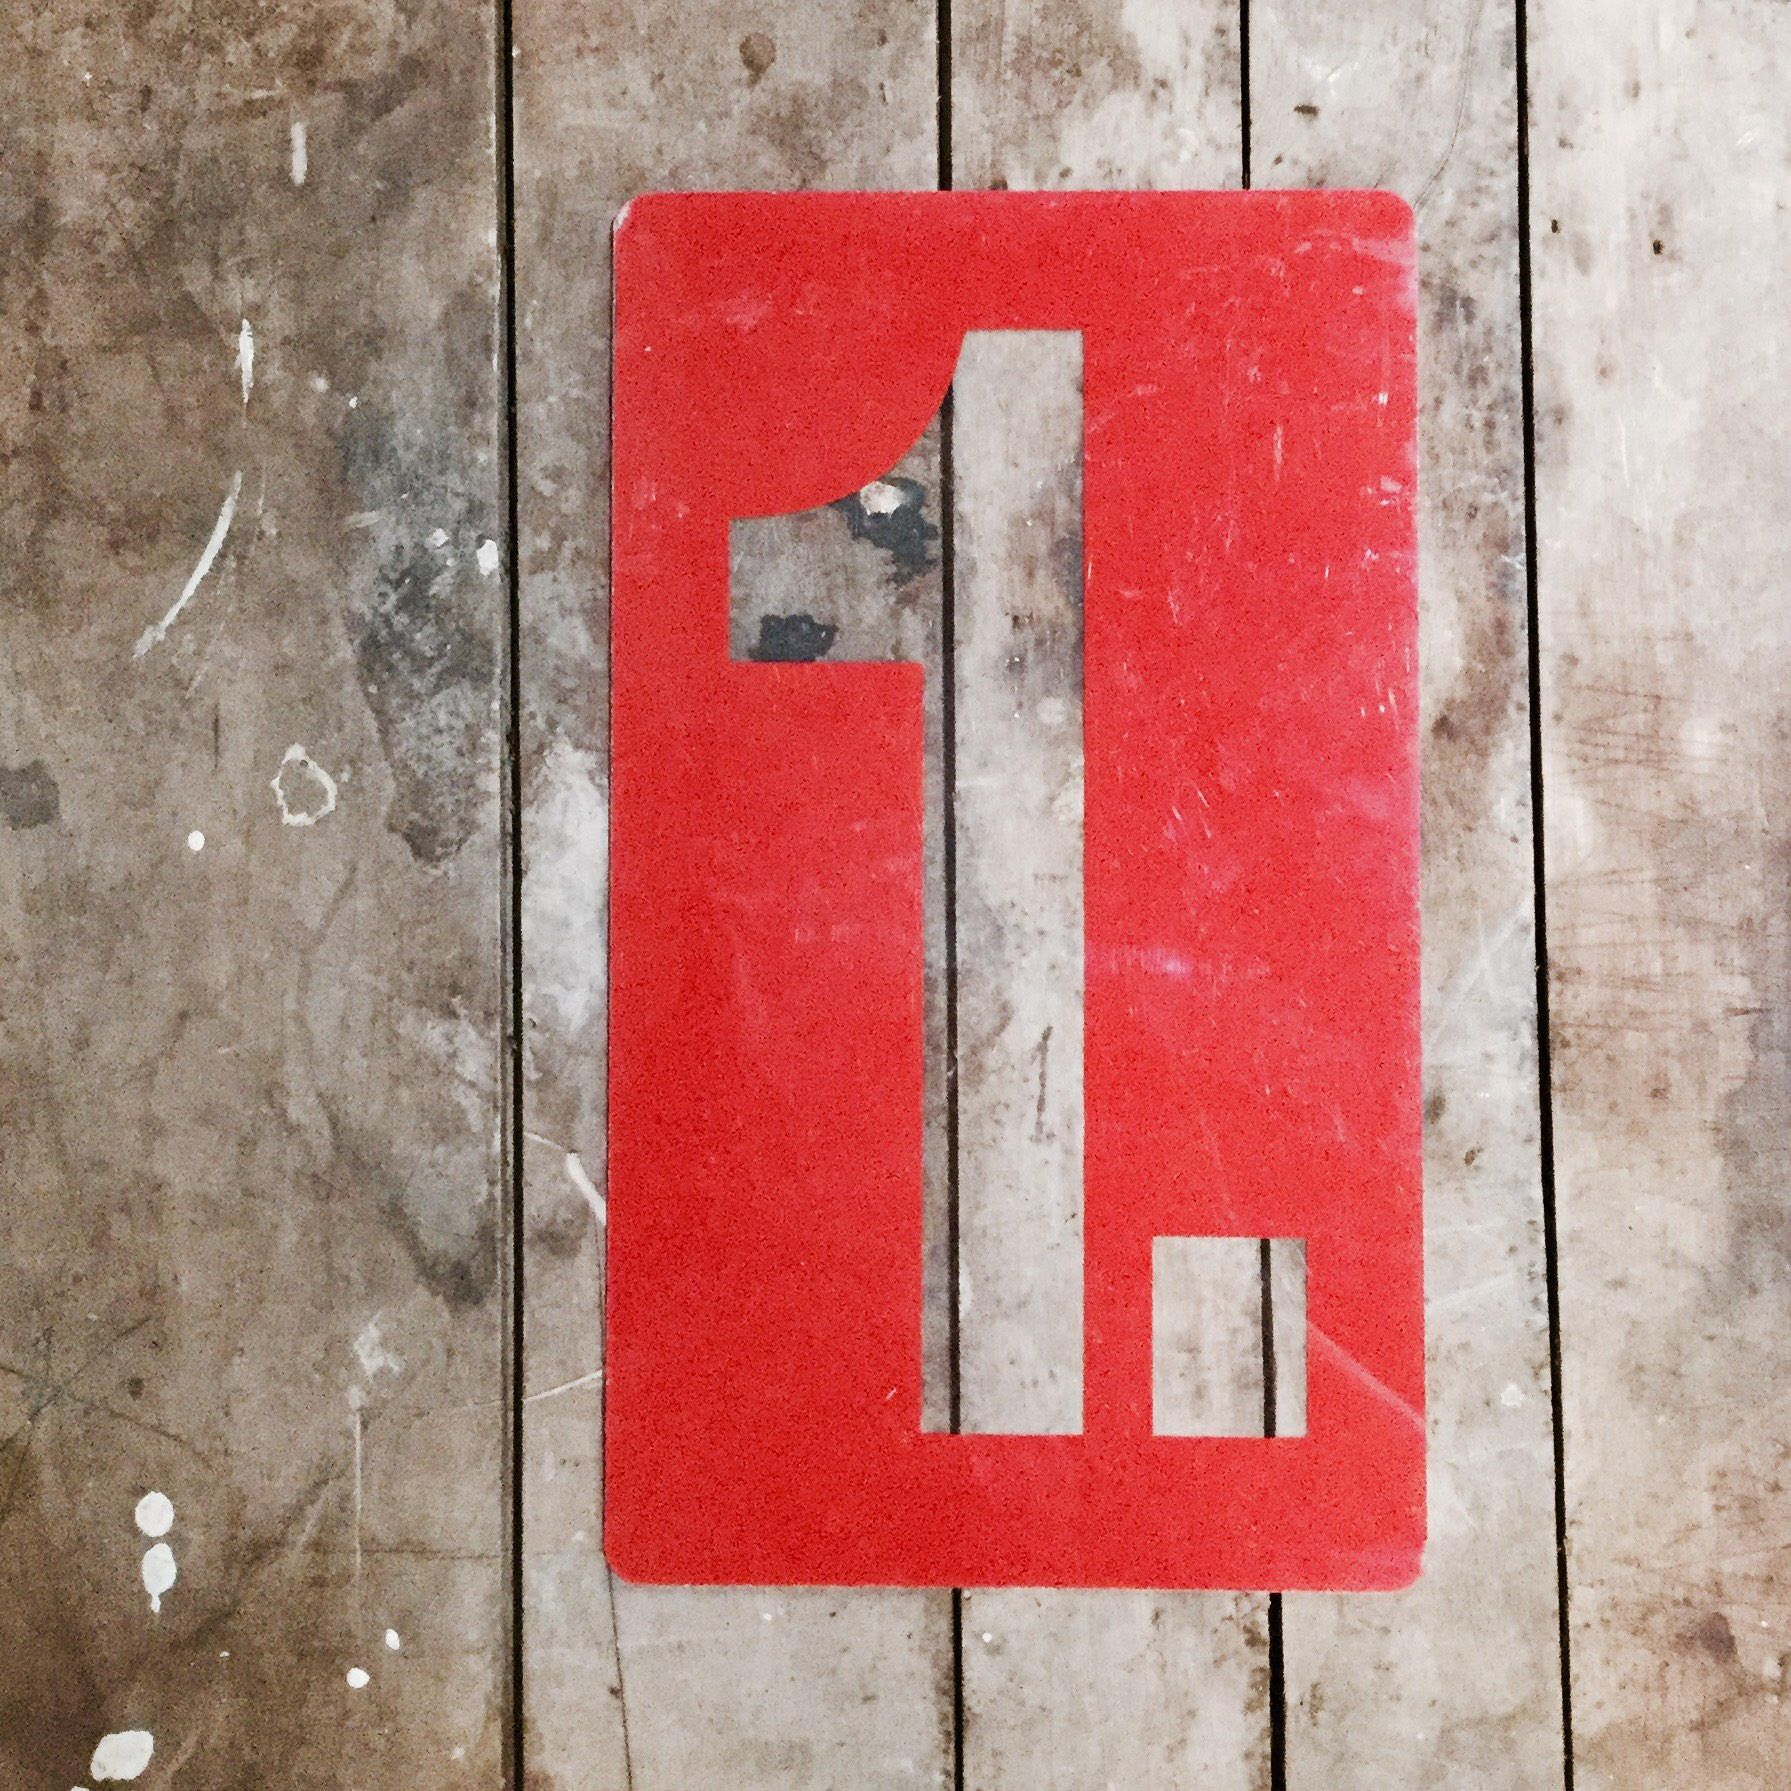 Invert color jpg online - 1 Marquis Number Inverted Color Red Gallery Wall Industrial Vintage